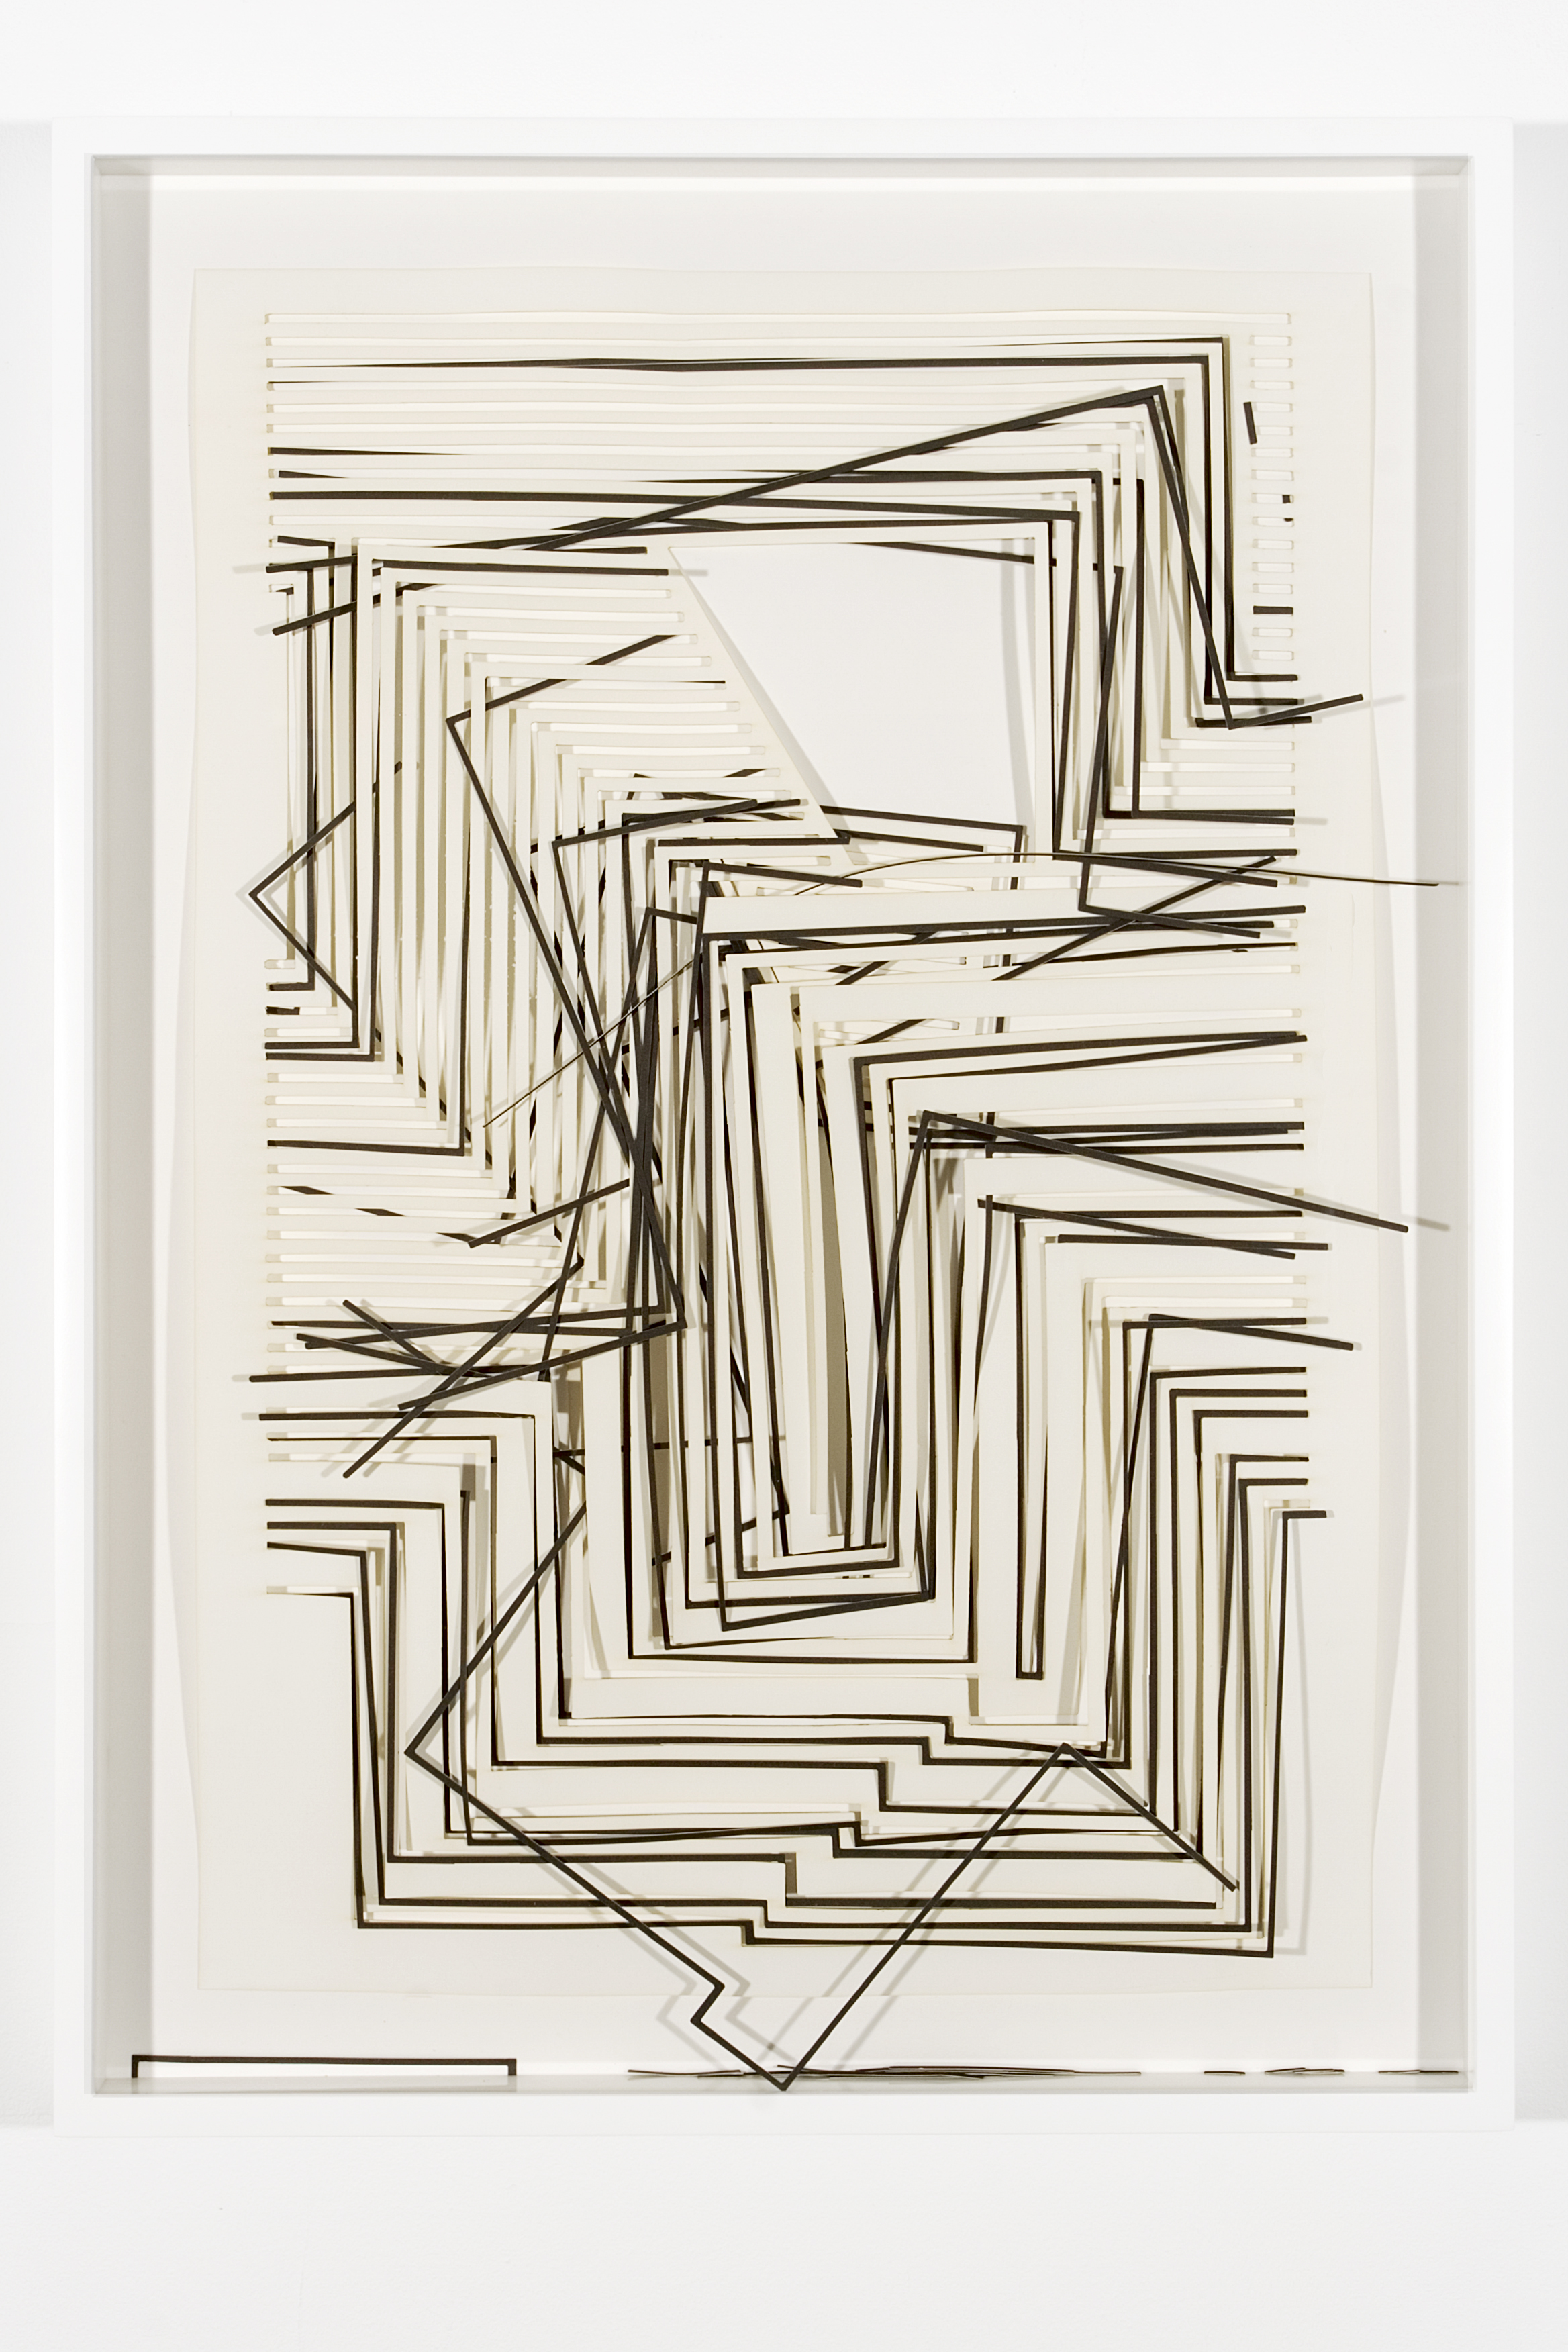 "Collapsed Drawing: ""Graphic Tectonic III"" (Josef Albers), 2007 laser-cut paper and laser-cut archival digital print mounted on museum board 76,5 x 55,3 cm - 30 1/8 x 21 3/4 inches (framed)"